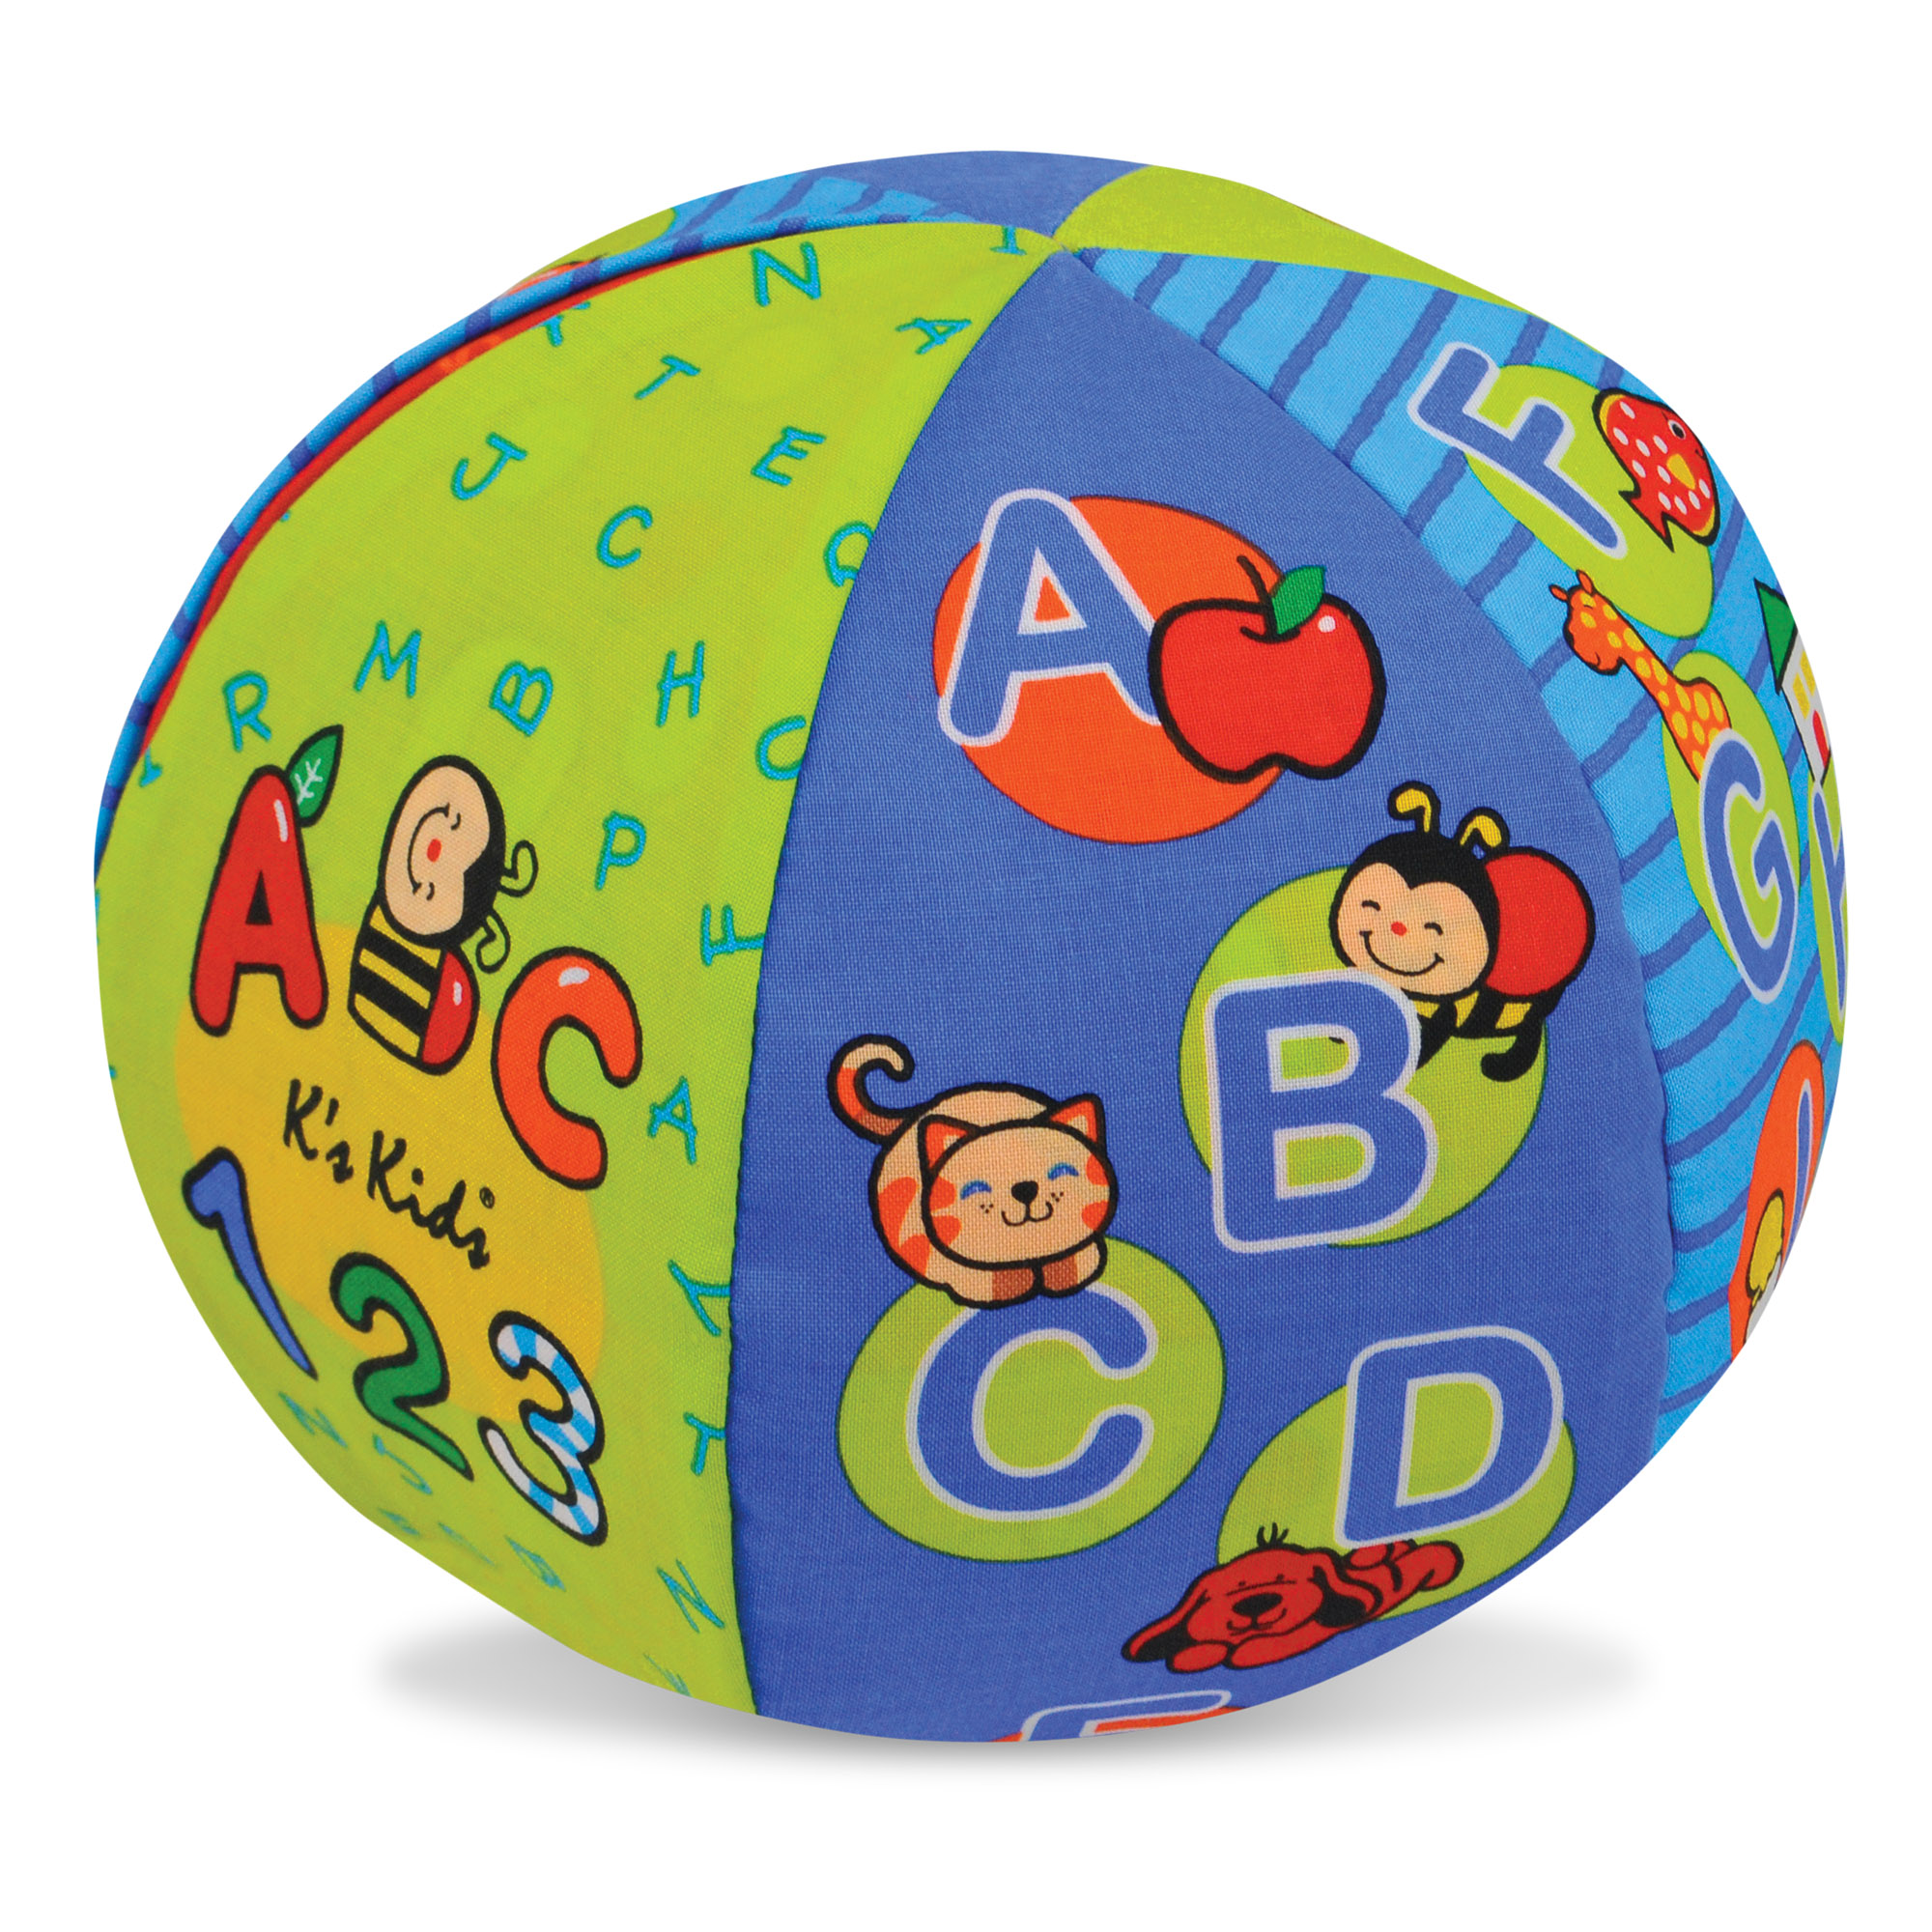 2-in-1 Talking Ball Learning Toy 9181